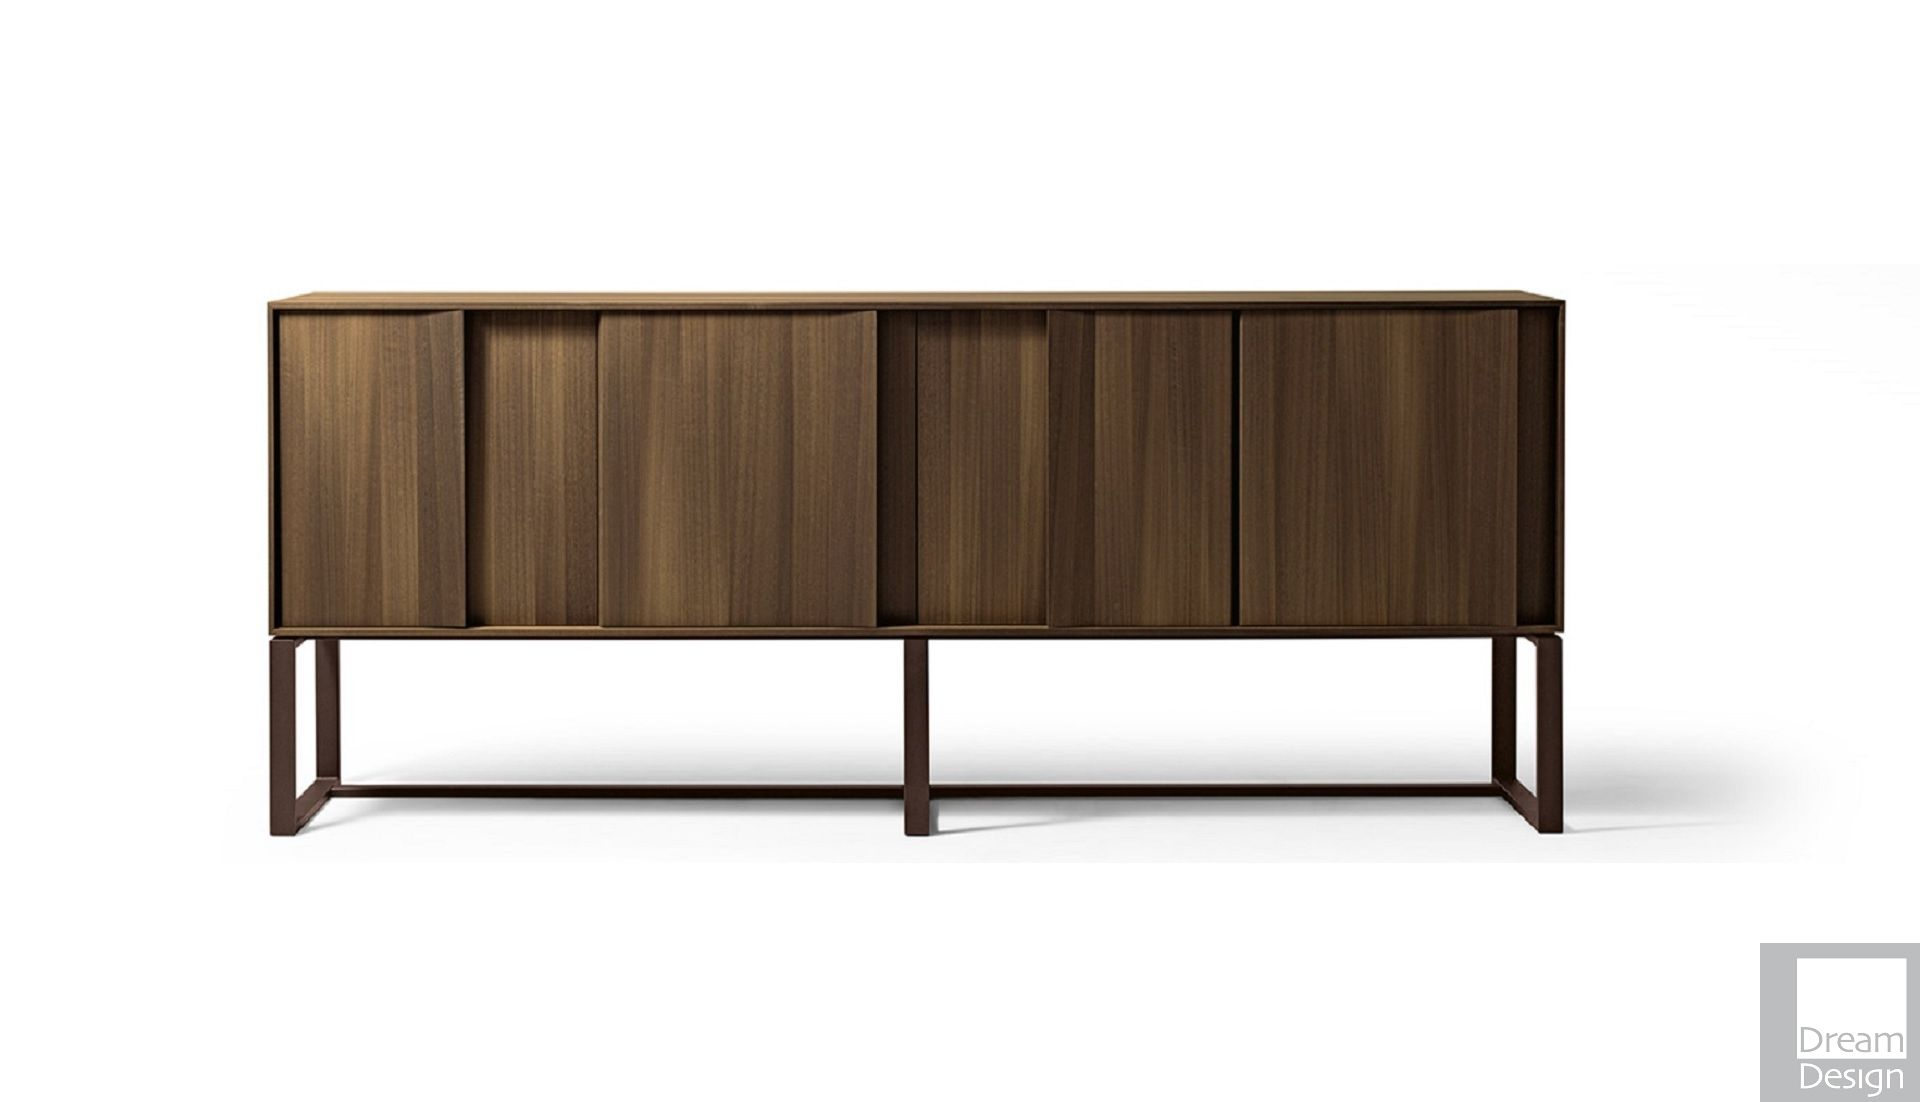 Origami Low Buy the Origami sideboard